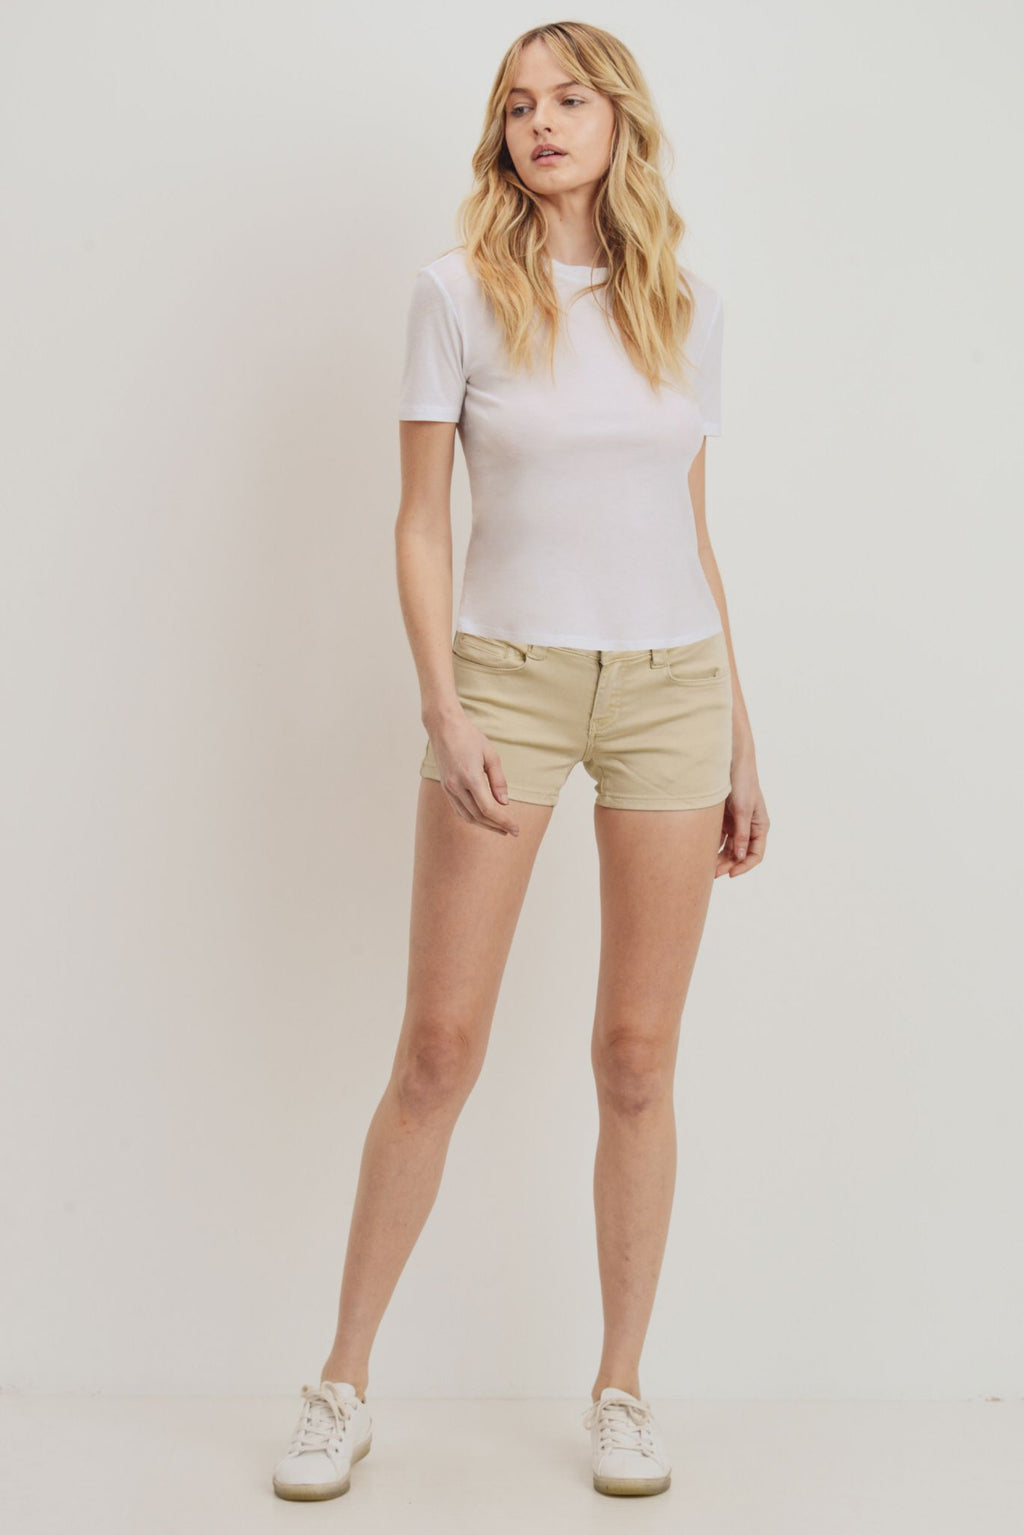 Cami Shorts – Sand Shell